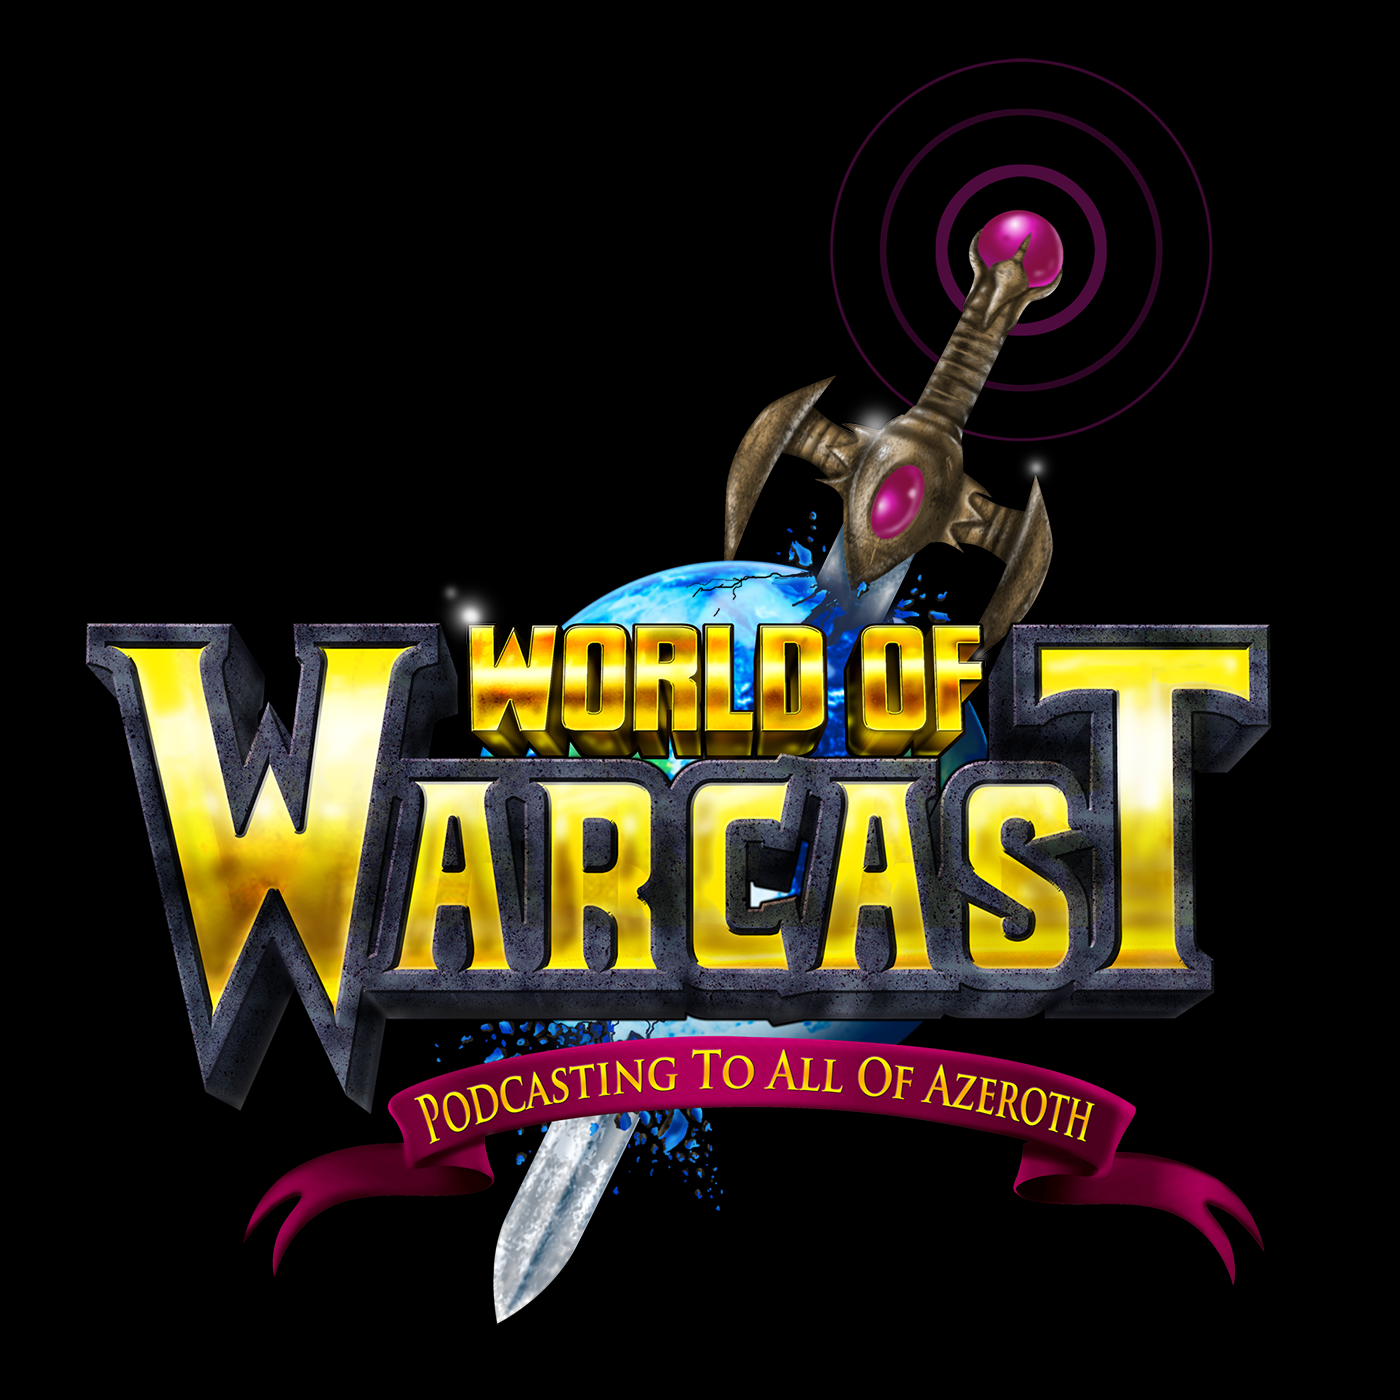 World of Warcast | A World of Warcraft Podcast